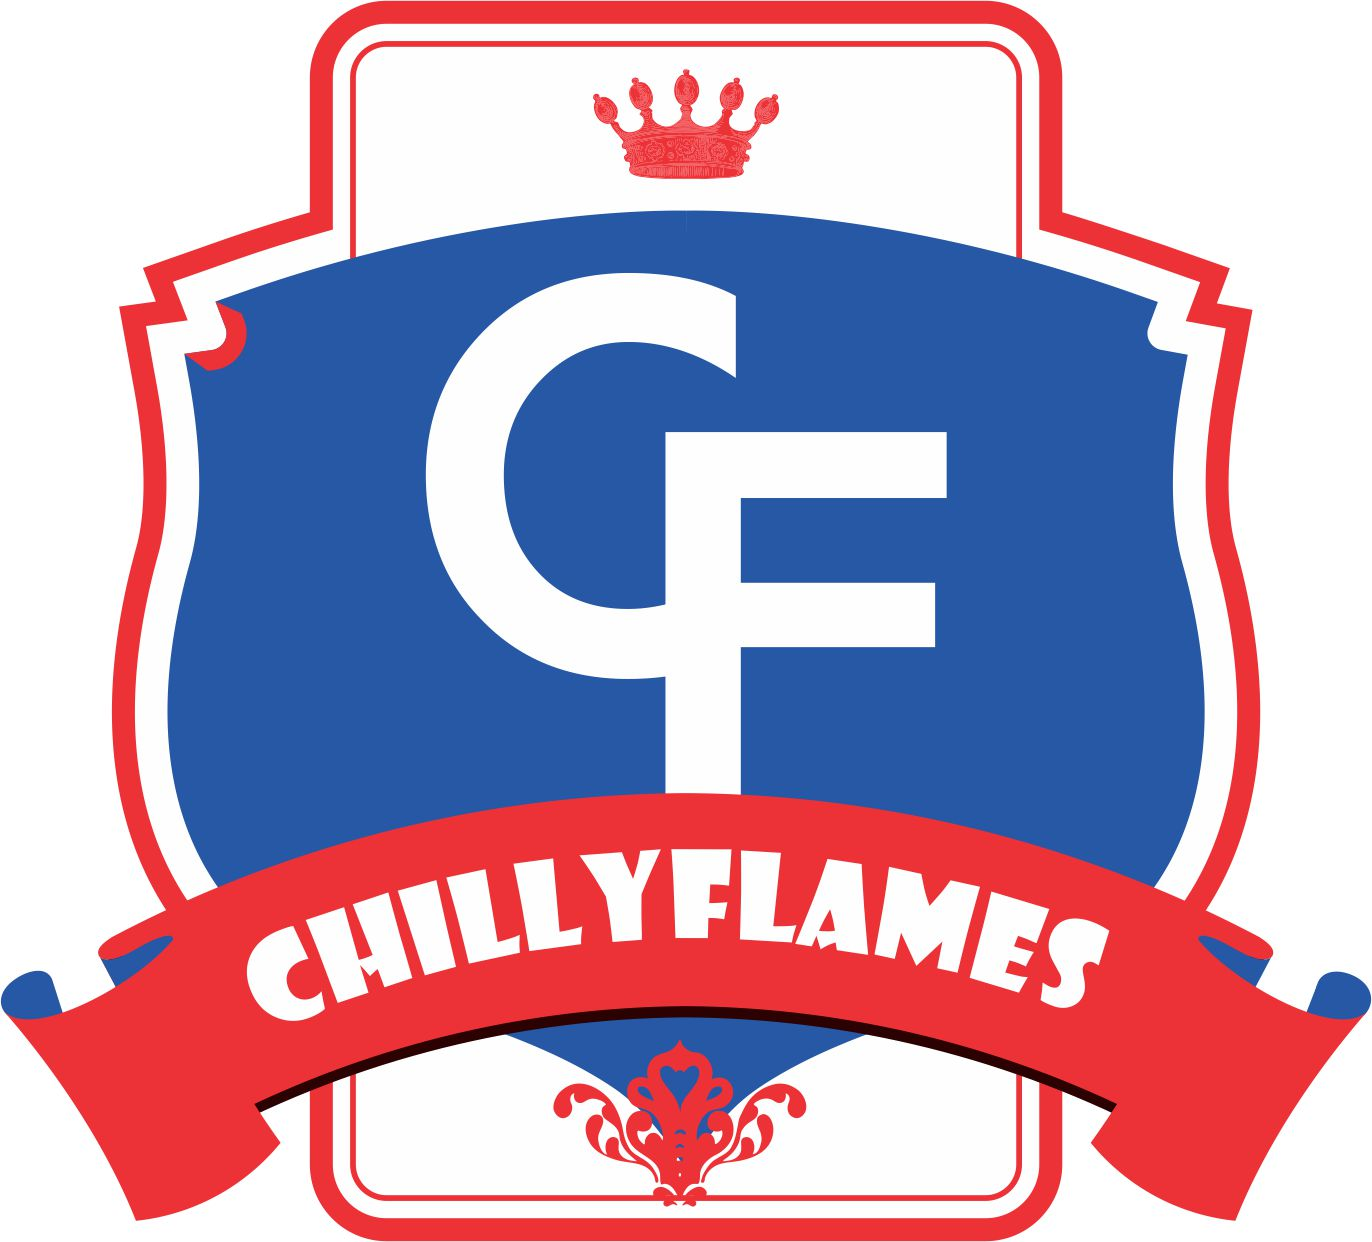 Chilly Flames